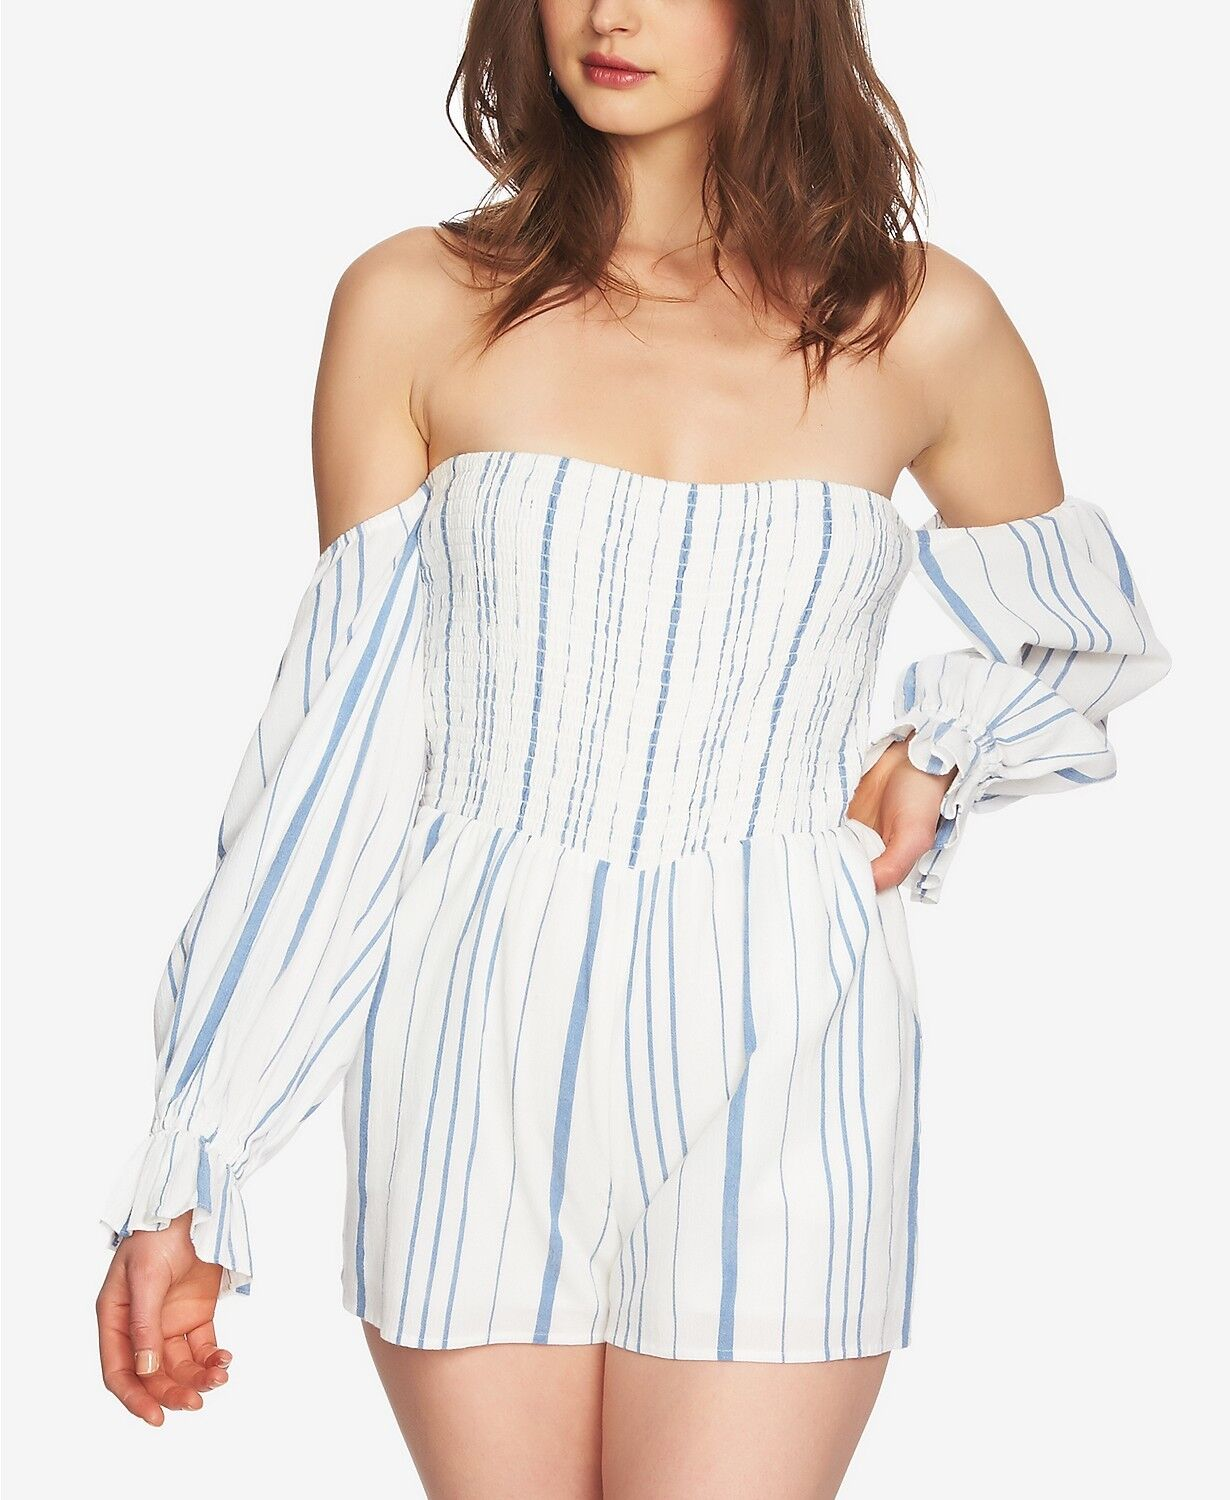 320 1. STATE WOMEN'S WHITE blueE STRIPED OFF SHOULDER CASUAL SHORT ROMPER SIZE L